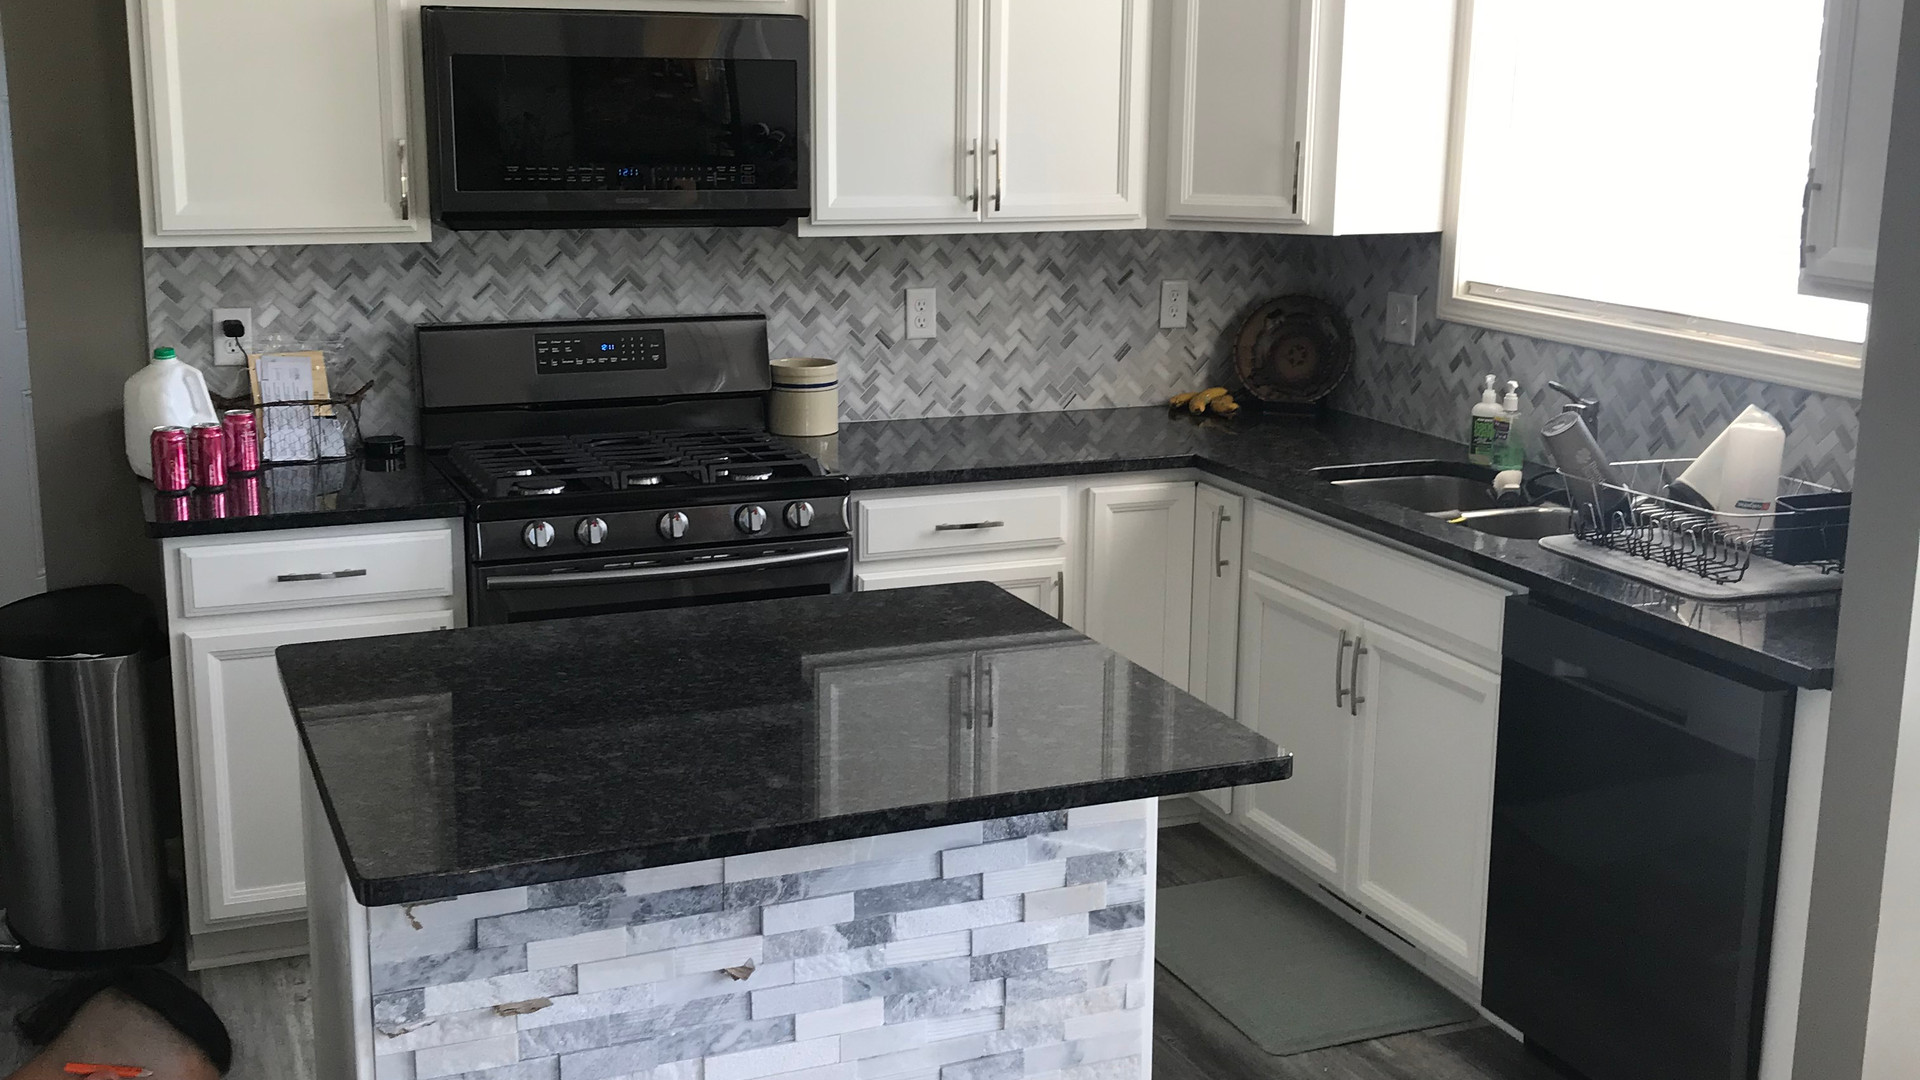 Backsplash and Luxury Vinyl Plank